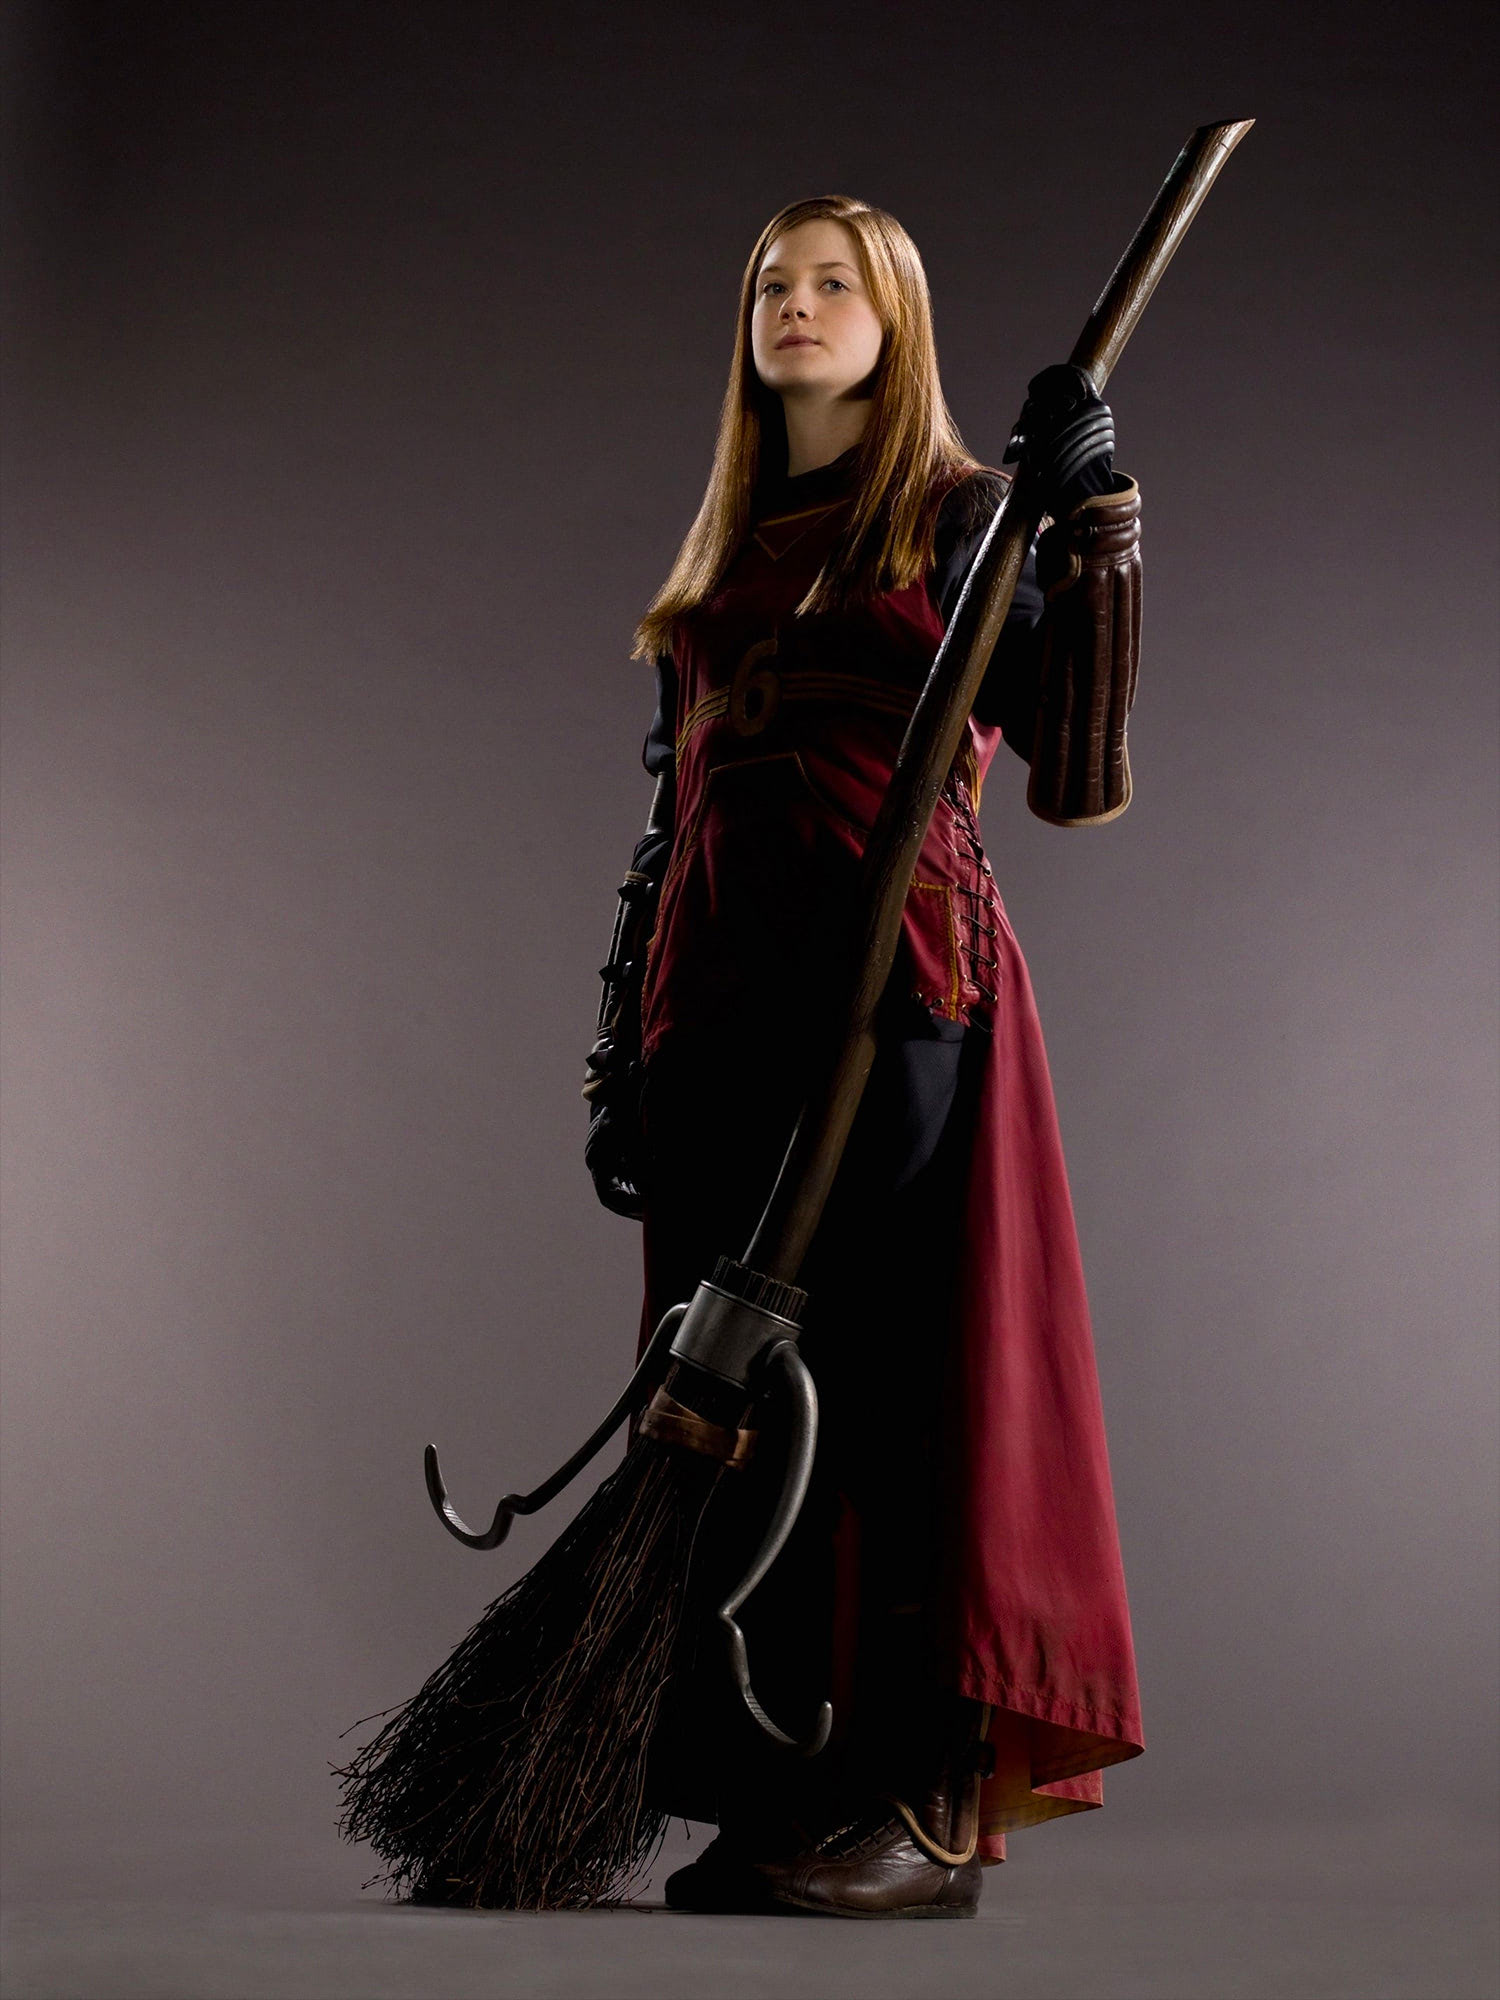 Portrait of Ginny Weasley in Quidditch robes